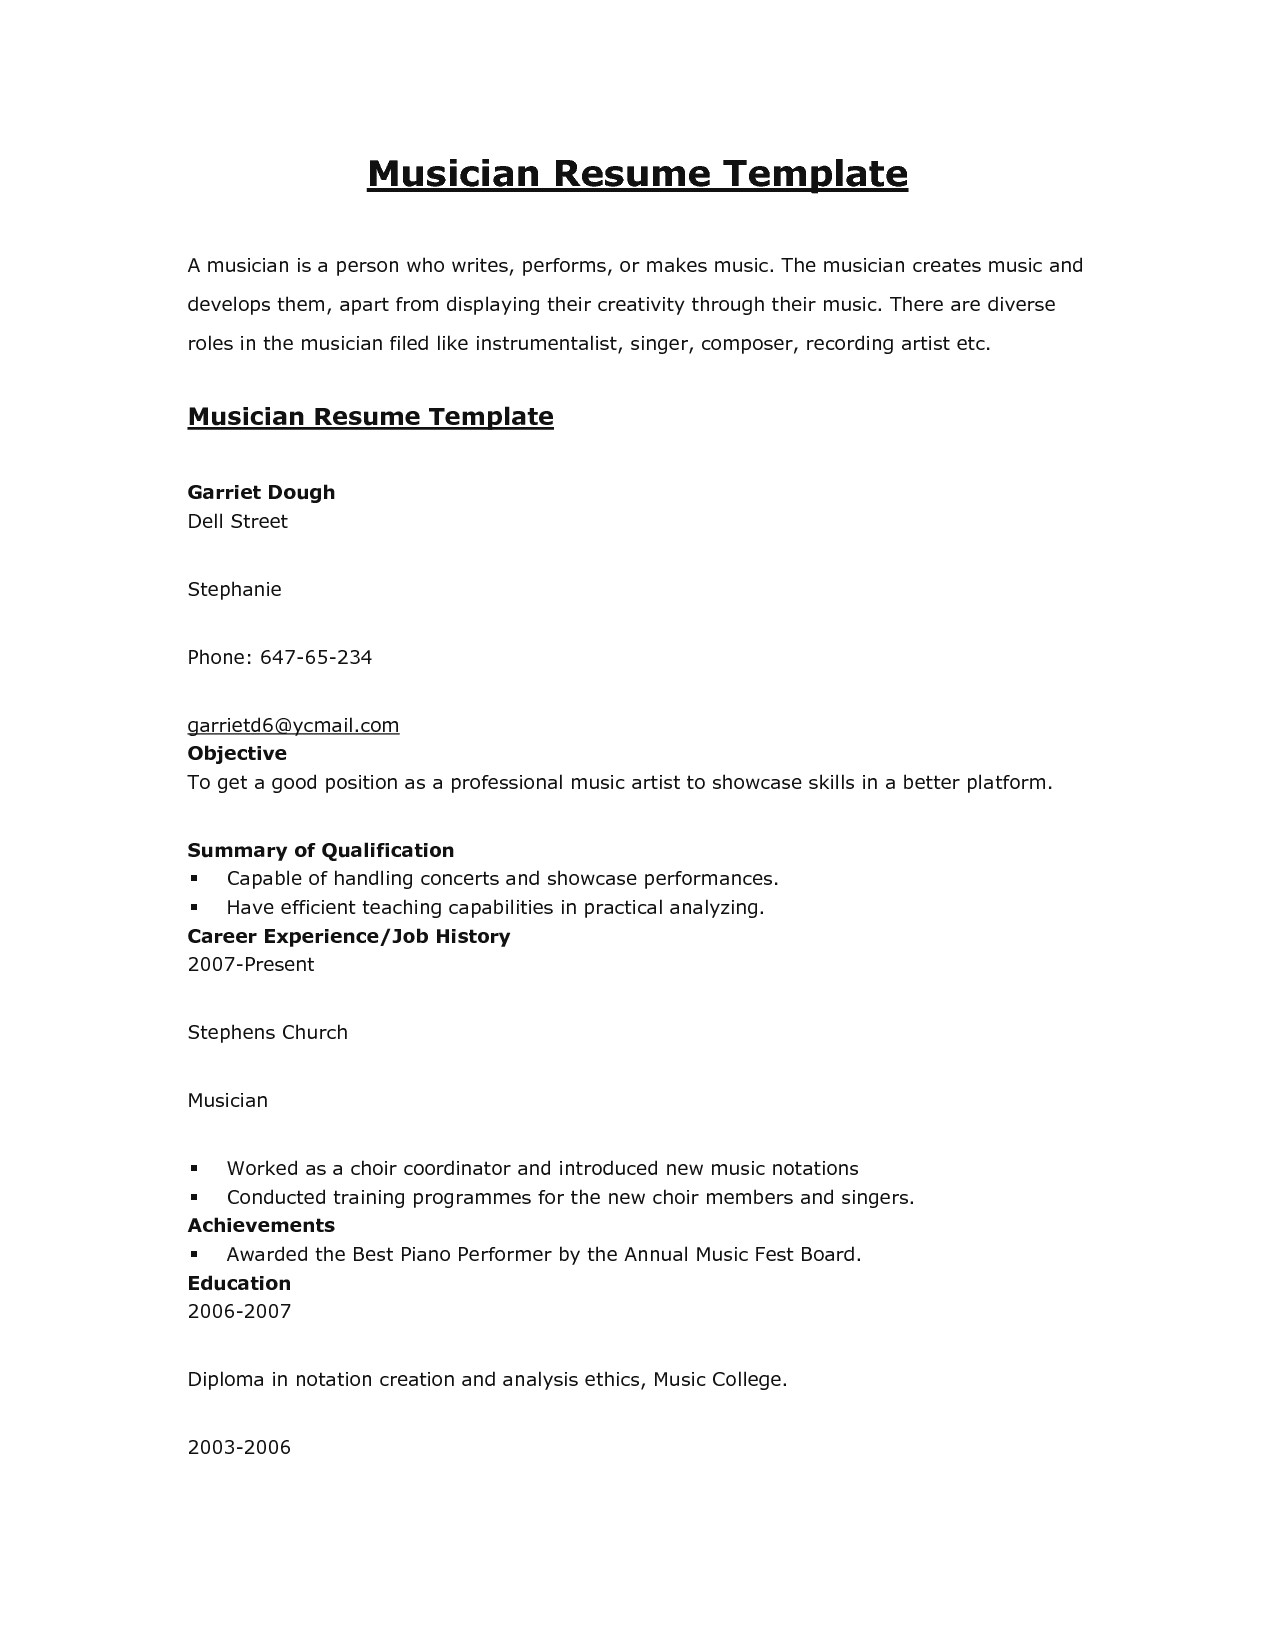 Music Resume Template Pictures Of Music Resume Template To Inspire